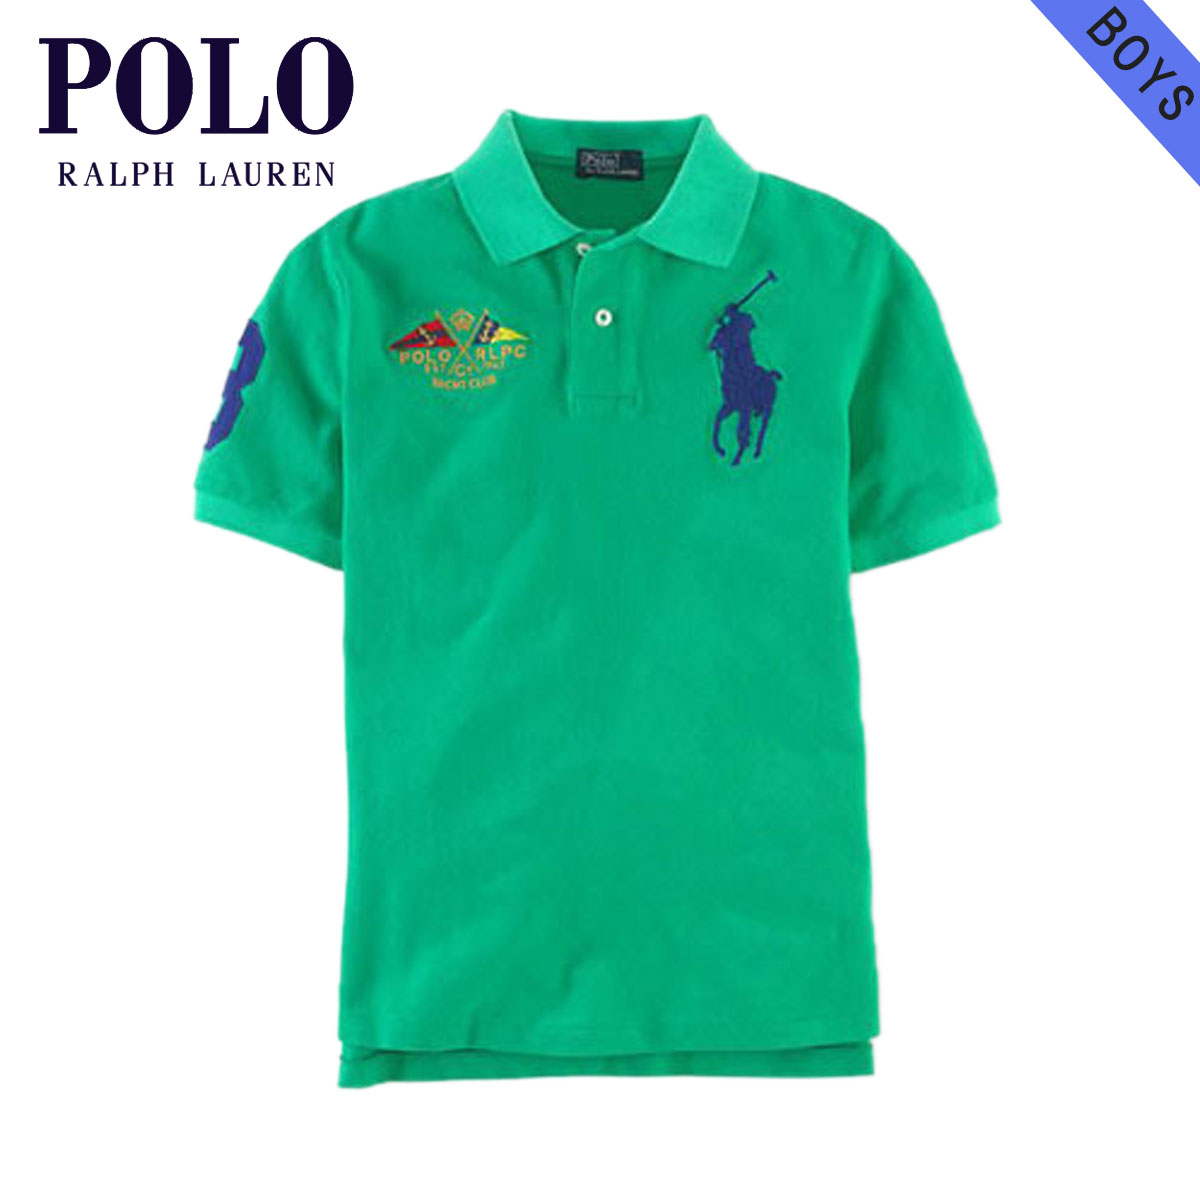 finest selection e3d33 f470f Polo Ralph Lauren kids polo shirt Boys children's clothes regular article  POLO RALPH LAUREN CHILDREN short sleeves polo shirt Big Pony Flag Polo ...